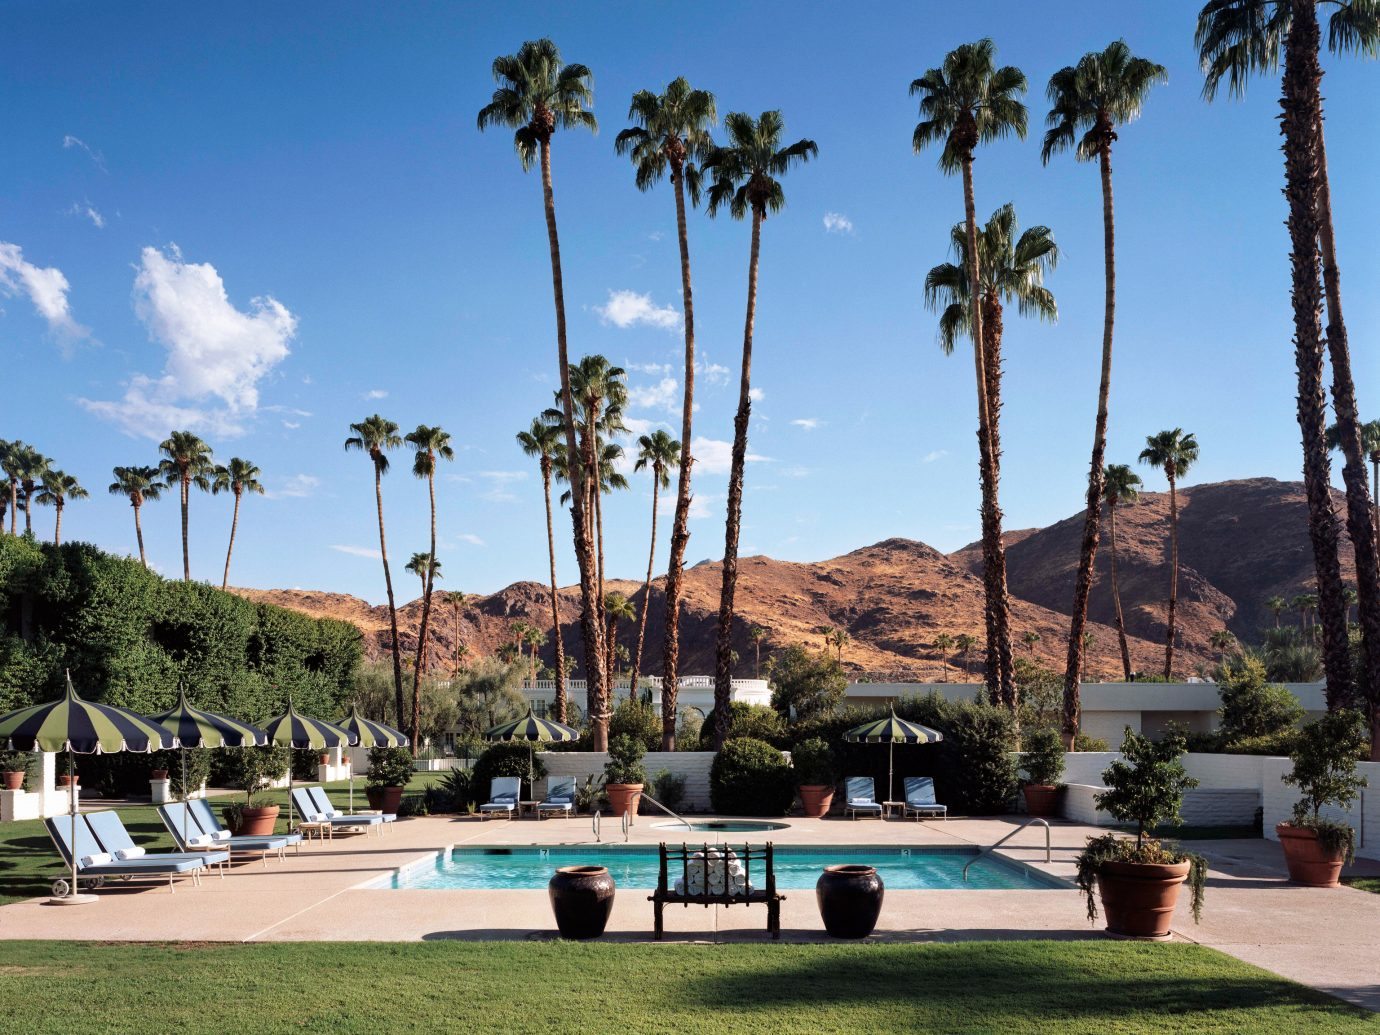 Boutique Hotels Festivals + Events Hotels Trip Ideas sky outdoor tree property estate vacation Resort palm arecales swimming pool Villa palm family plant